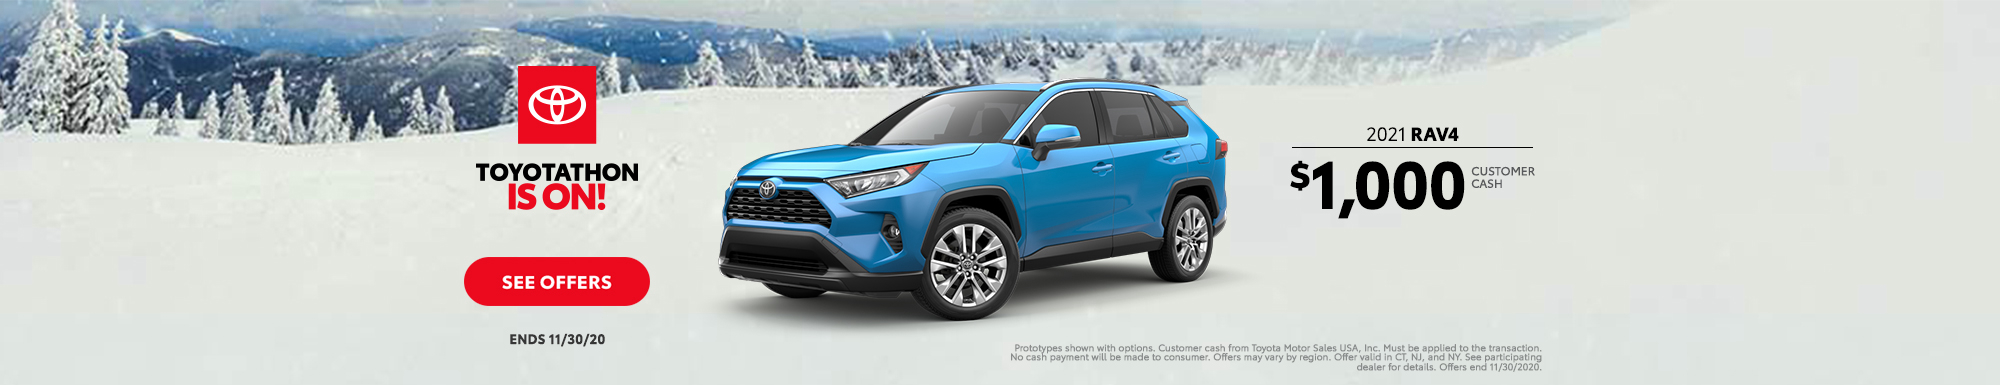 Toyota Christmas Deals Used 2020 Toyota Dealer Hartford CT New & Used Cars for Sale near Manchester